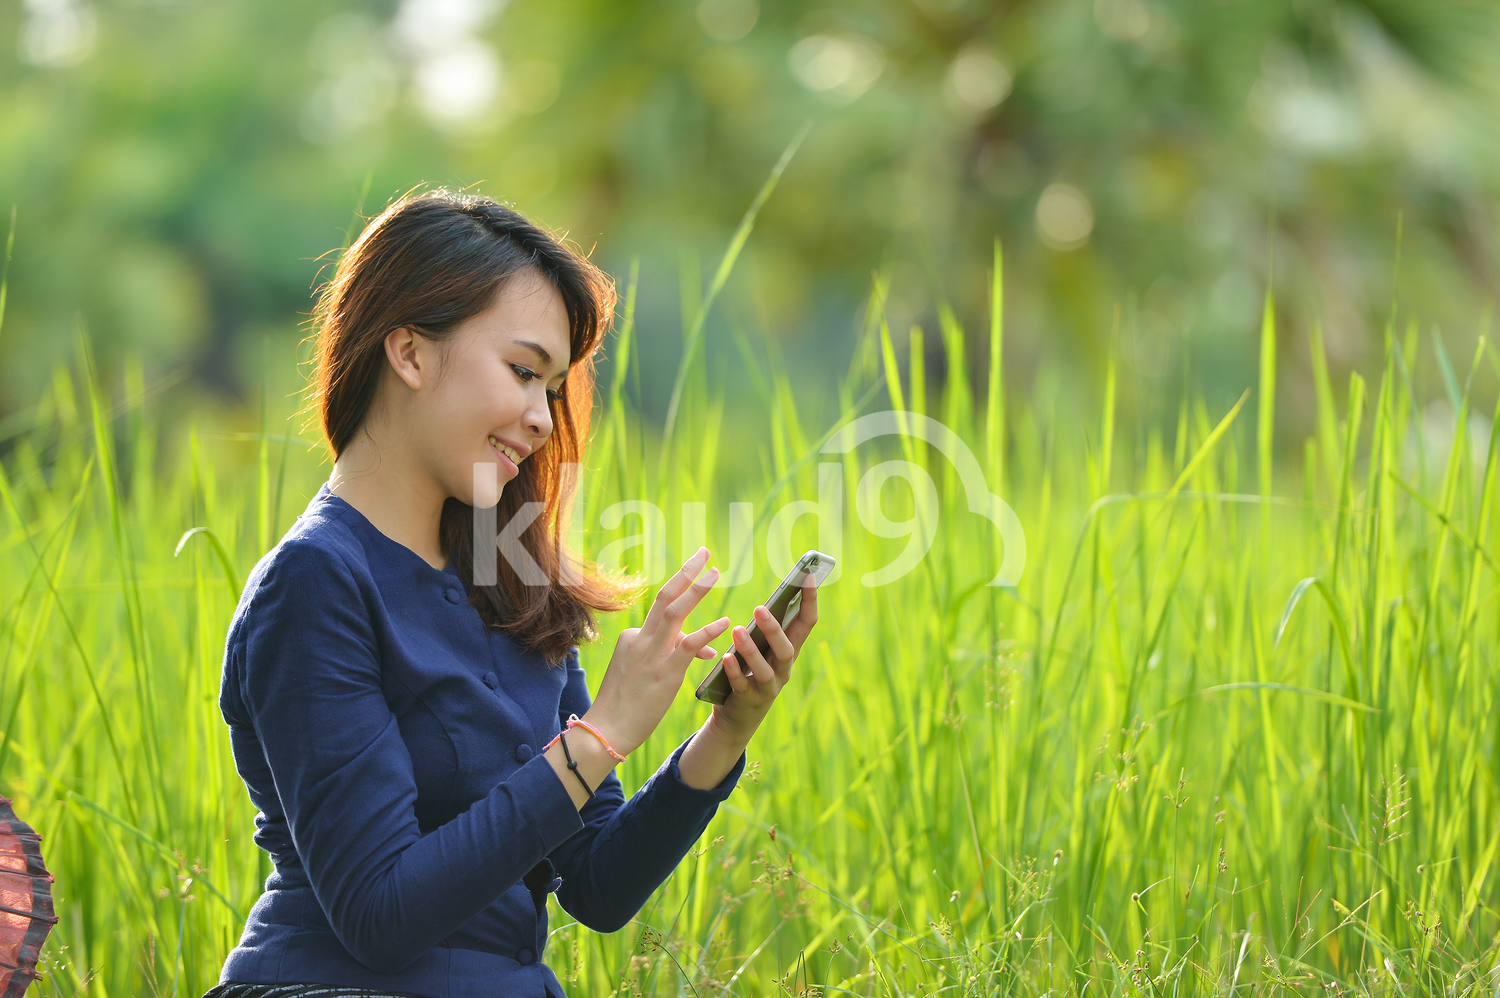 Beautiful Thai lady with smart phone in the fields